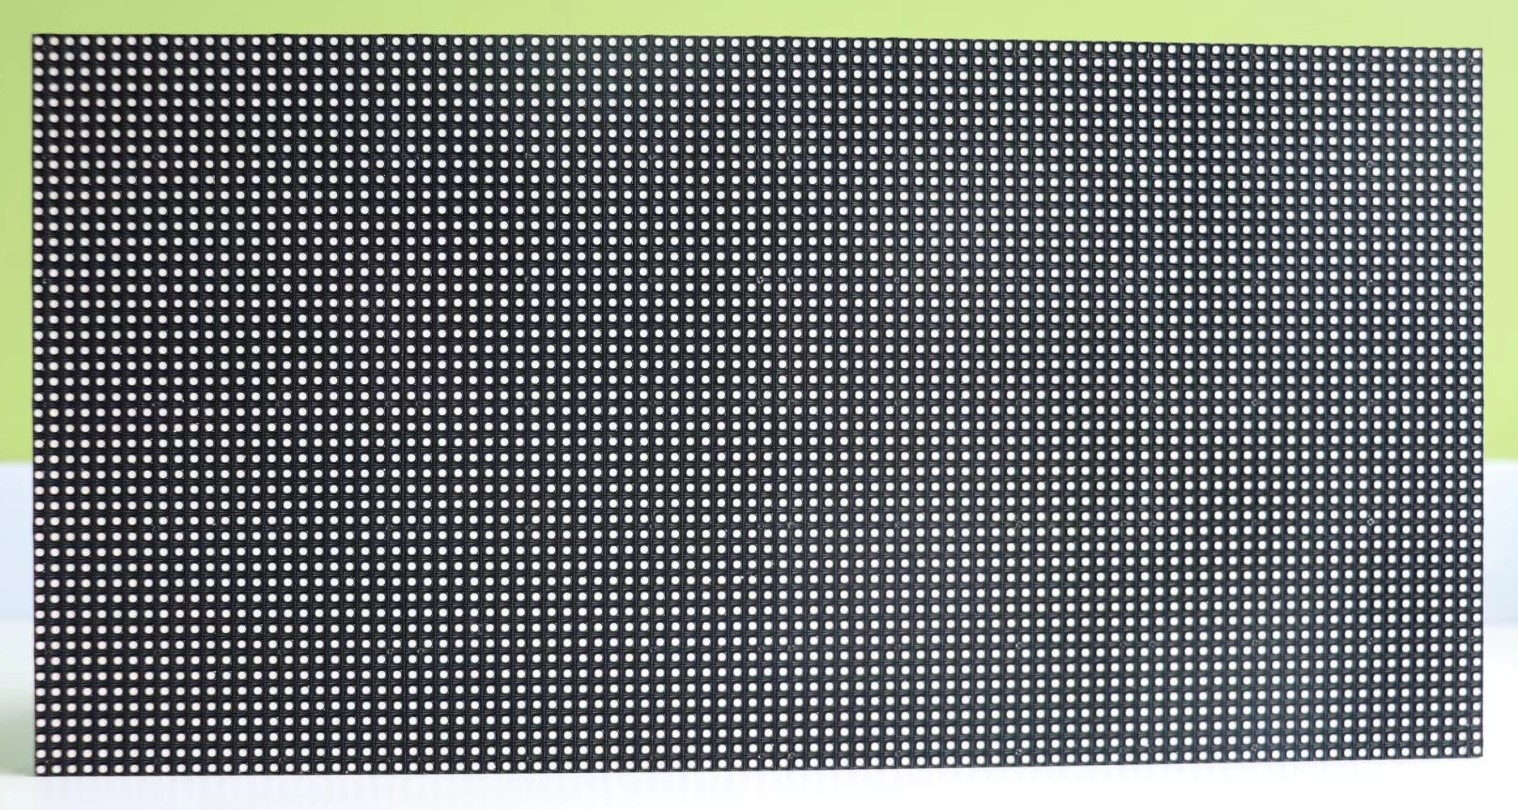 P3.33 Outdoor LED Display